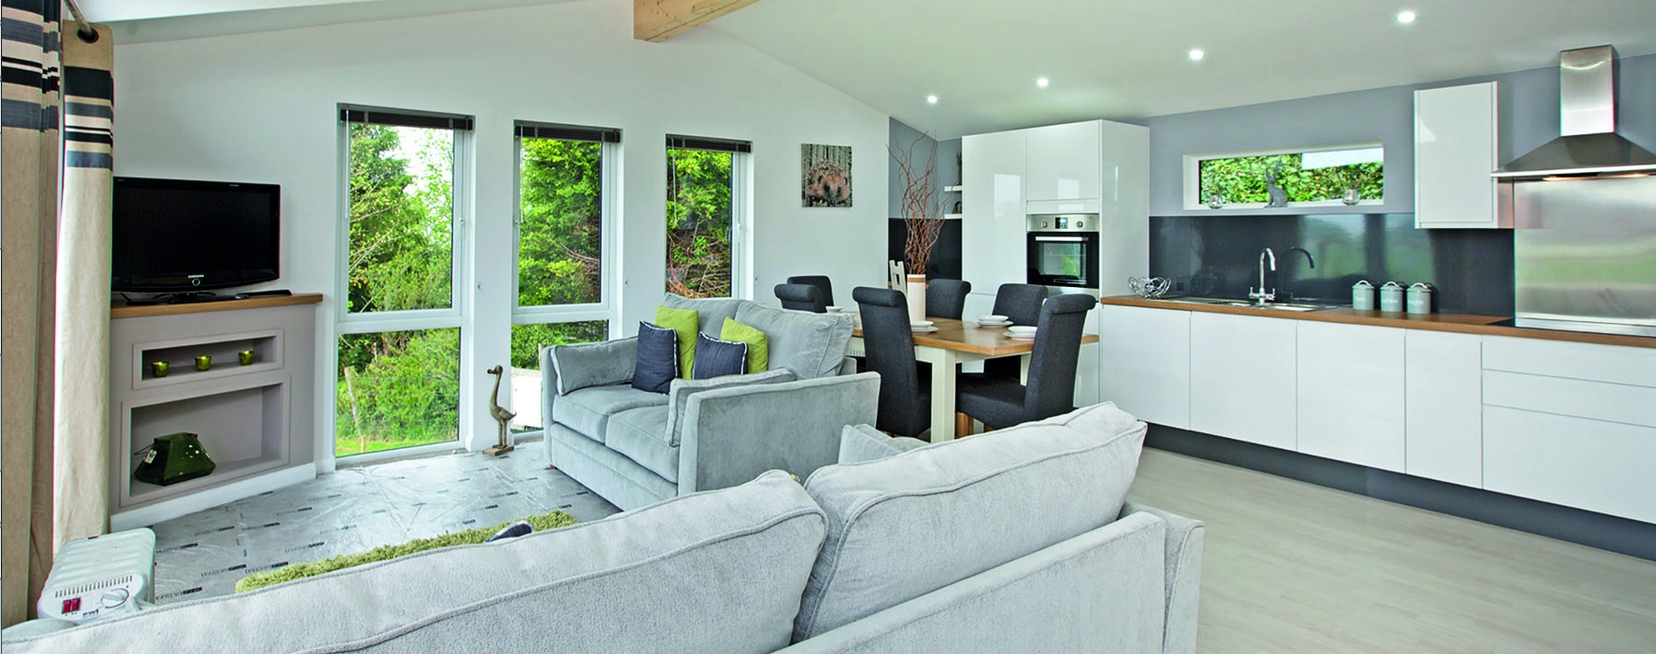 investment holiday lodges Devon